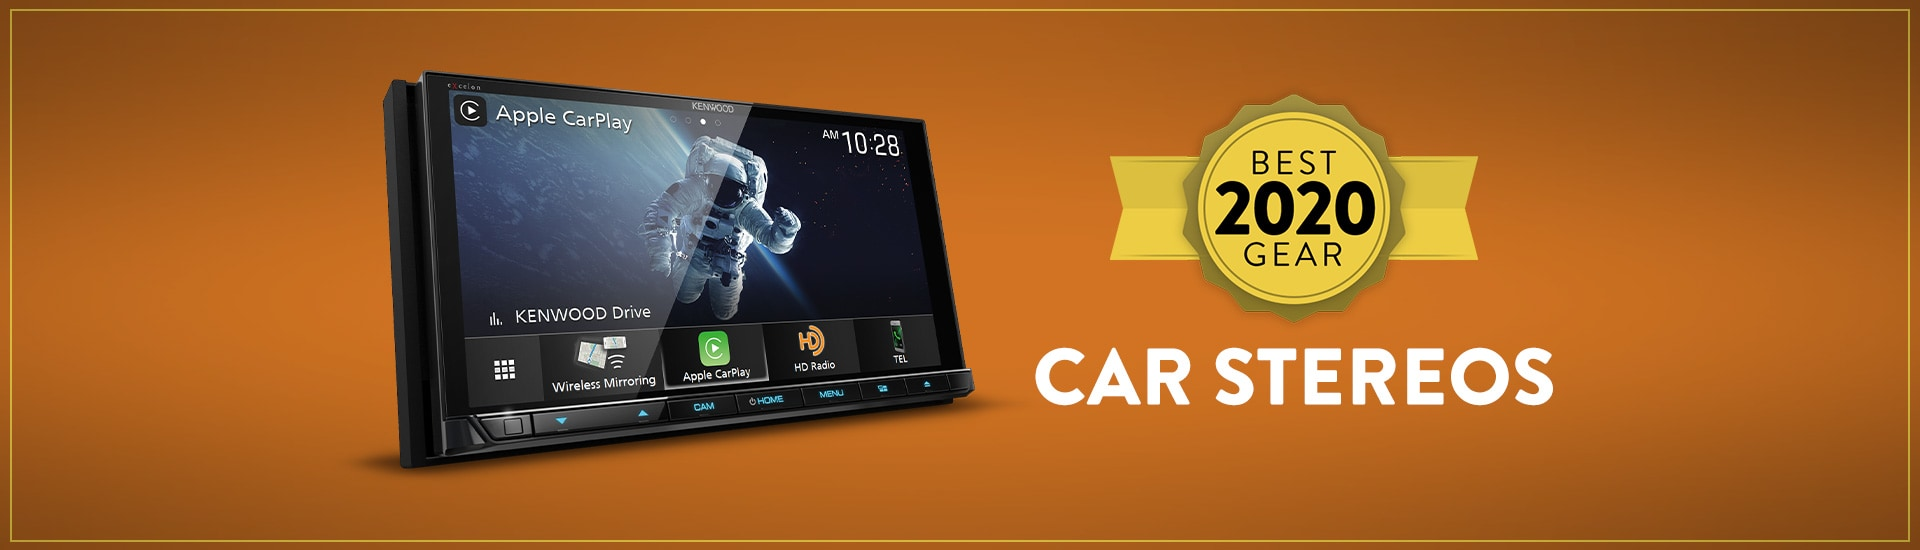 The Best Car Stereos of 2020